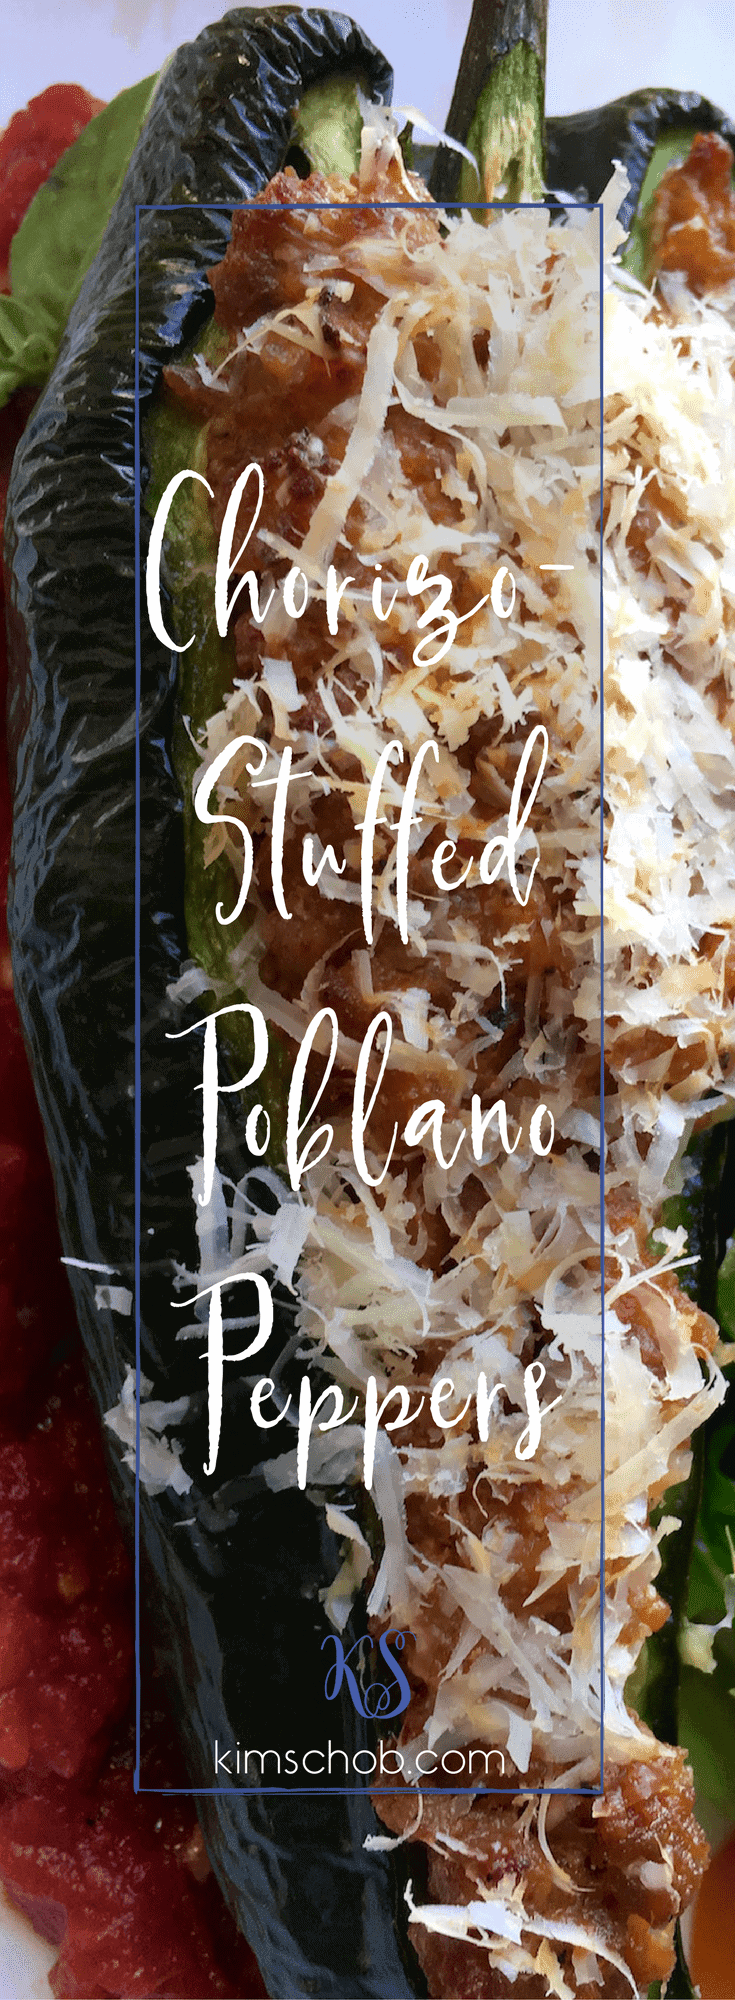 You won't believe how quick and easy these Chorizo-Stuffed Poblano Peppers are | kimschob.com #chorizostuffedpoblanopeppers #quickandeasy #kimschob